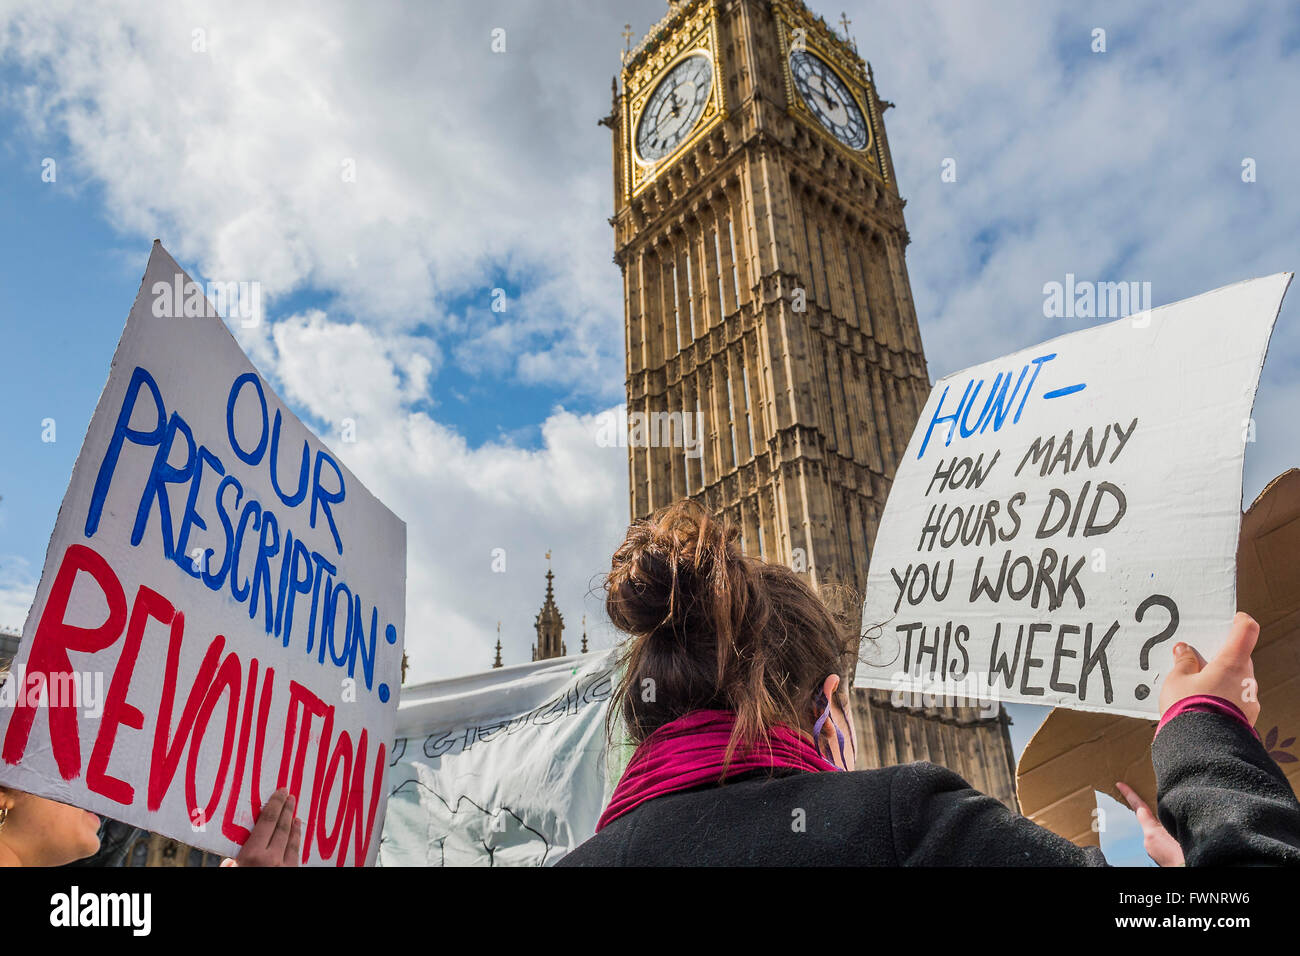 London, UK. 6th April, 2016. Nurses and doctors march on the department of health in Whitehall - The picket line - Stock Image